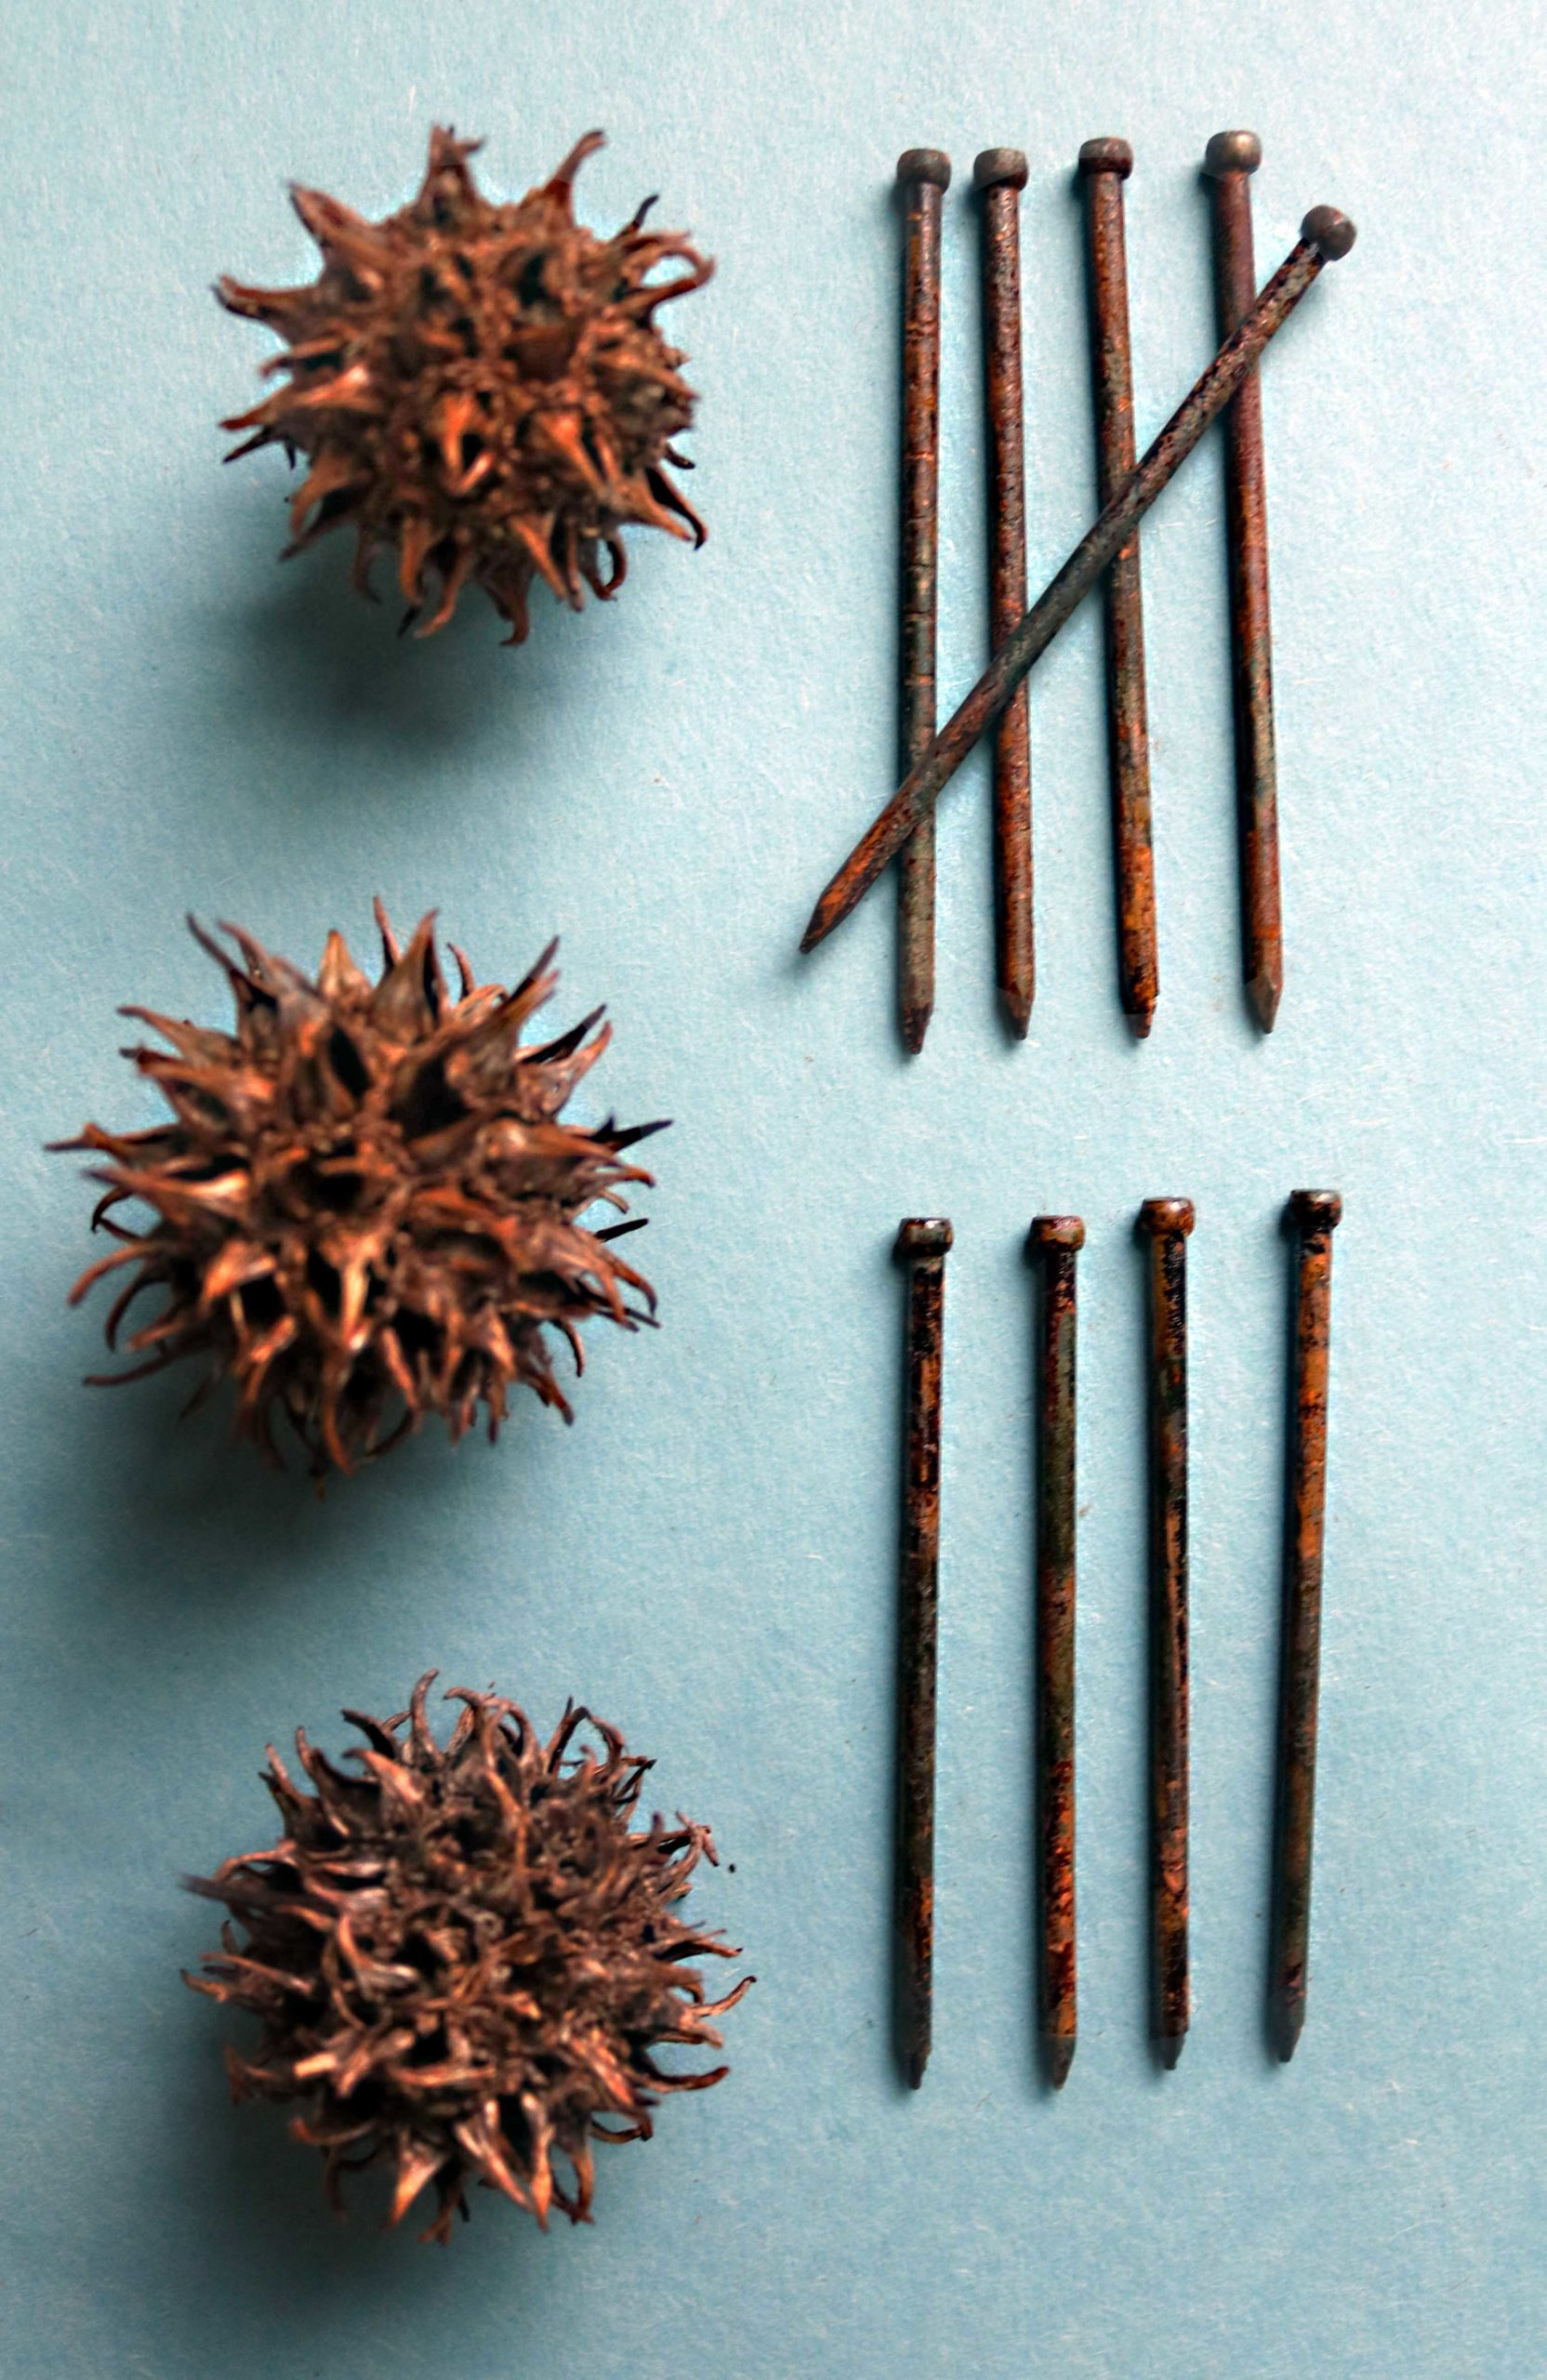 How to make and use rusty nails for witch bottles, spells, magic and protection.